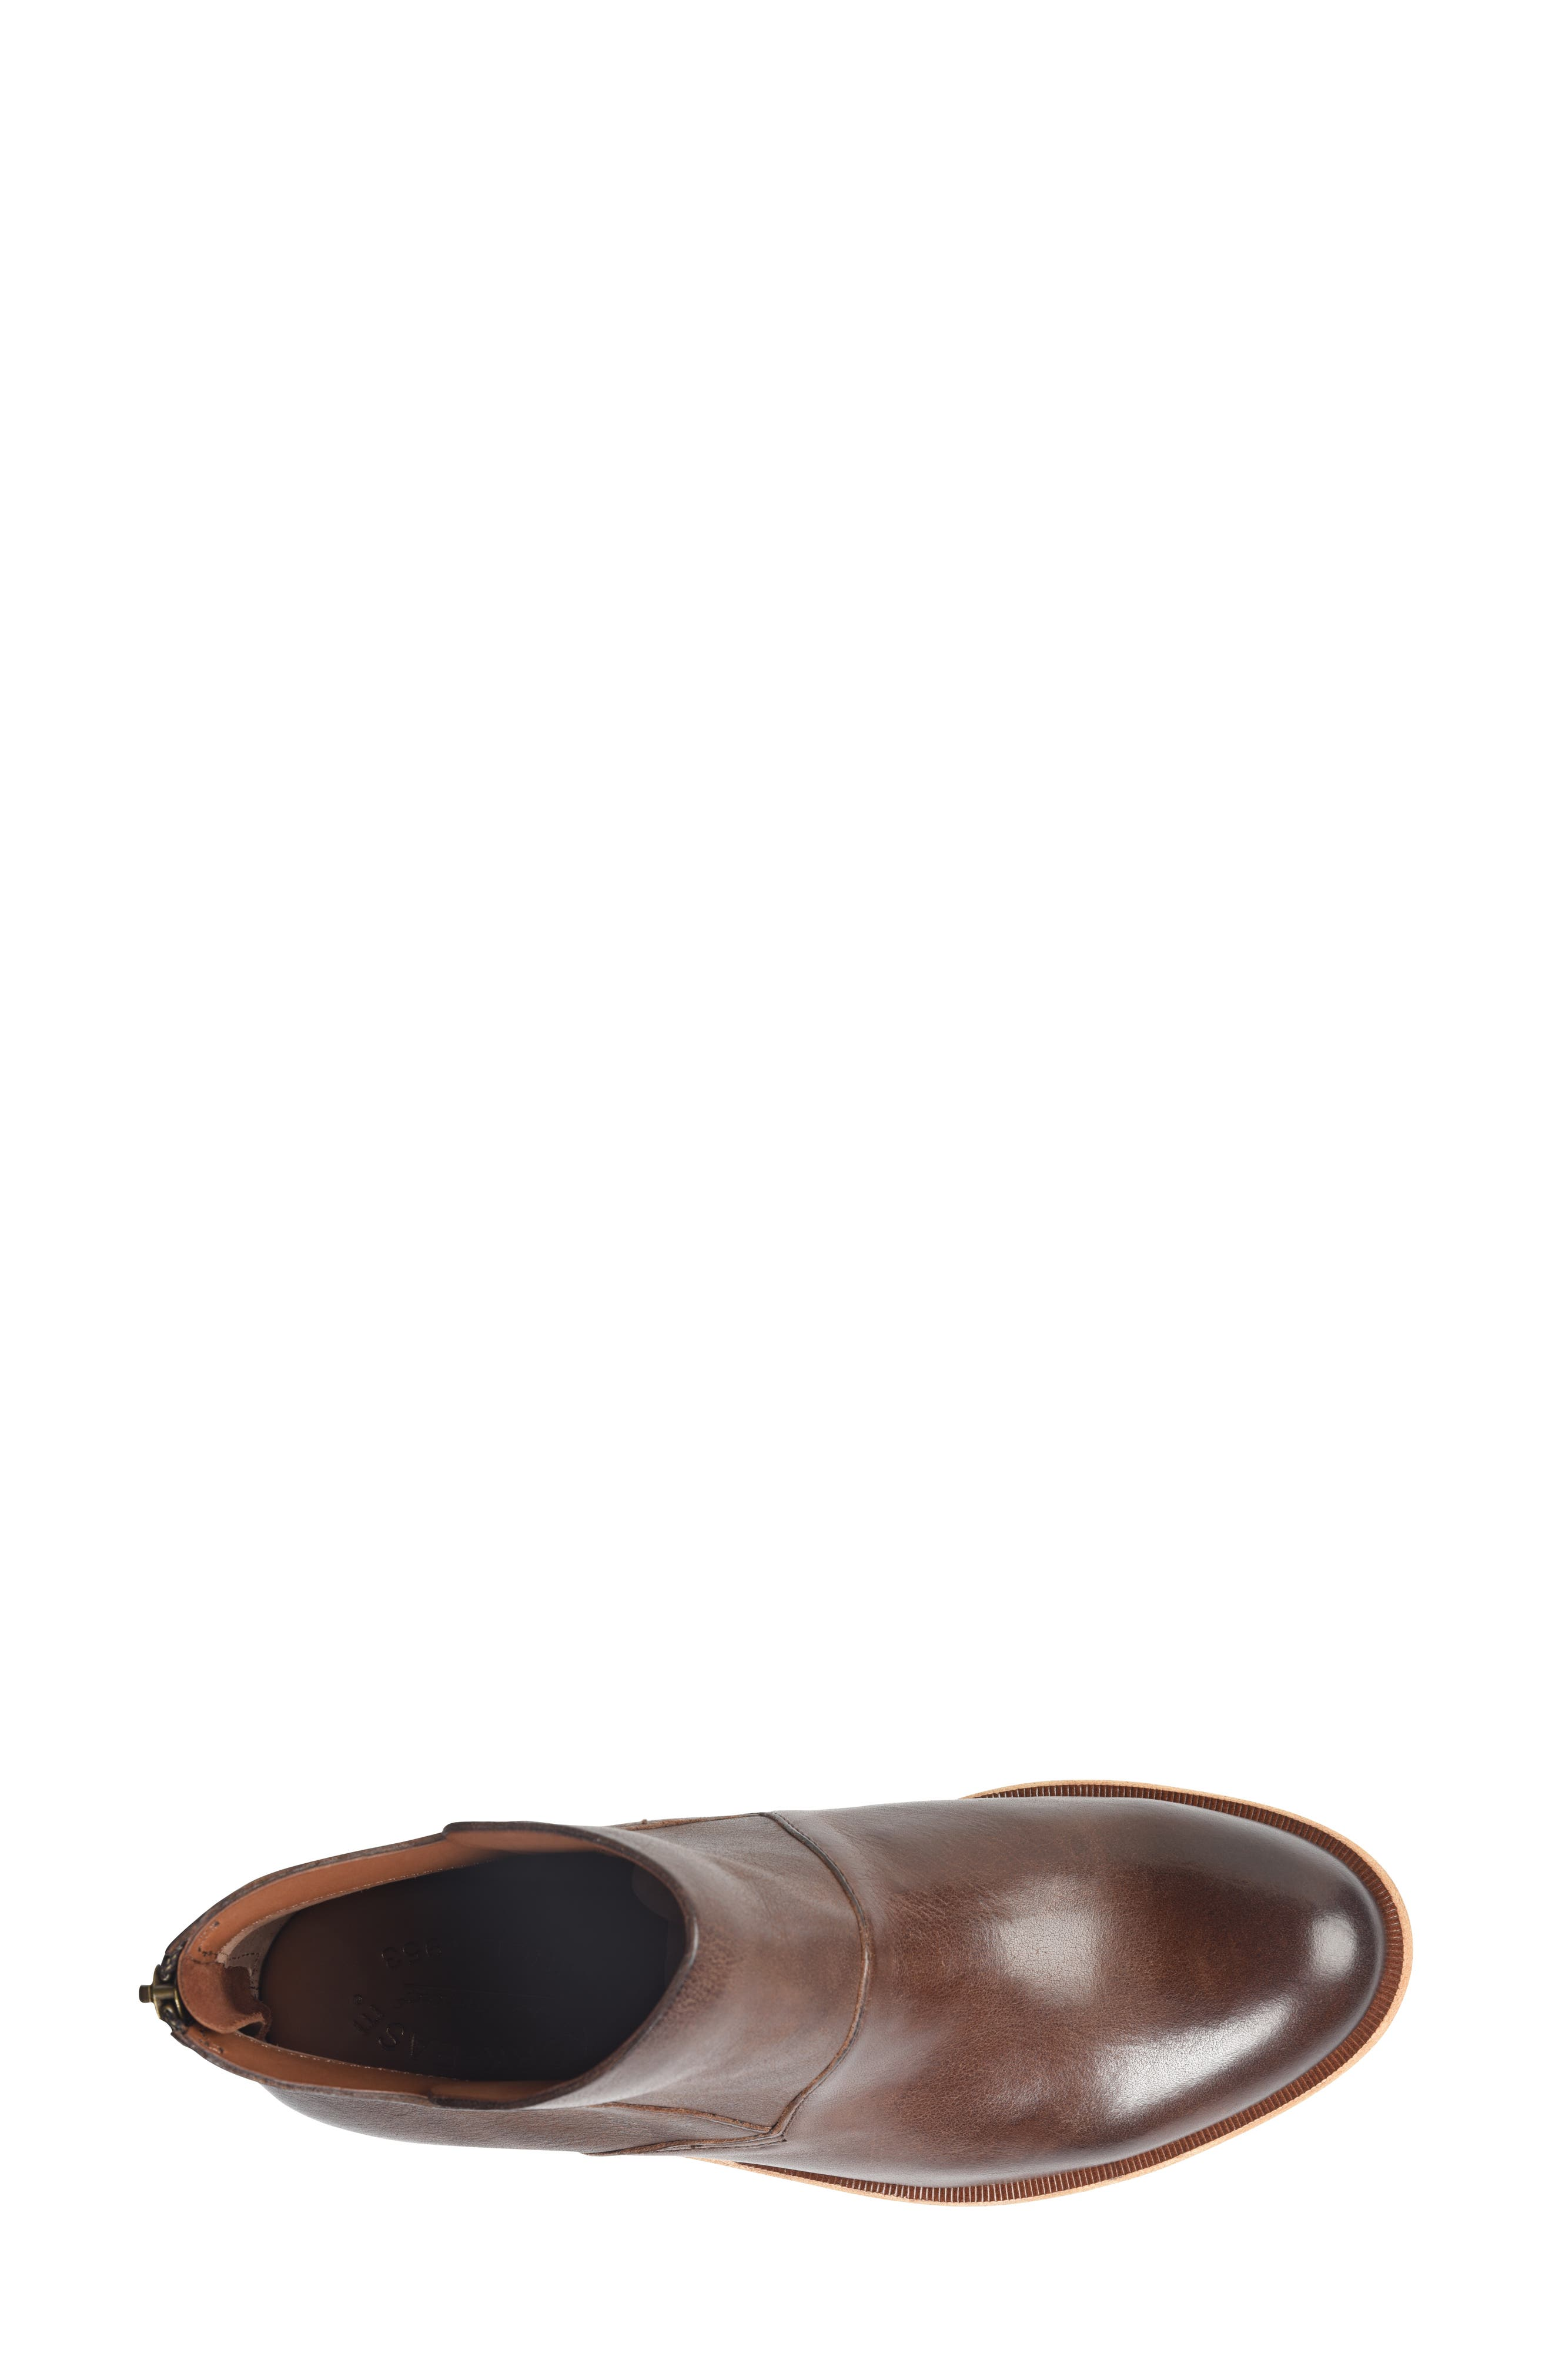 Ryder Ankle Boot,                             Alternate thumbnail 5, color,                             DARK BROWN LEATHER